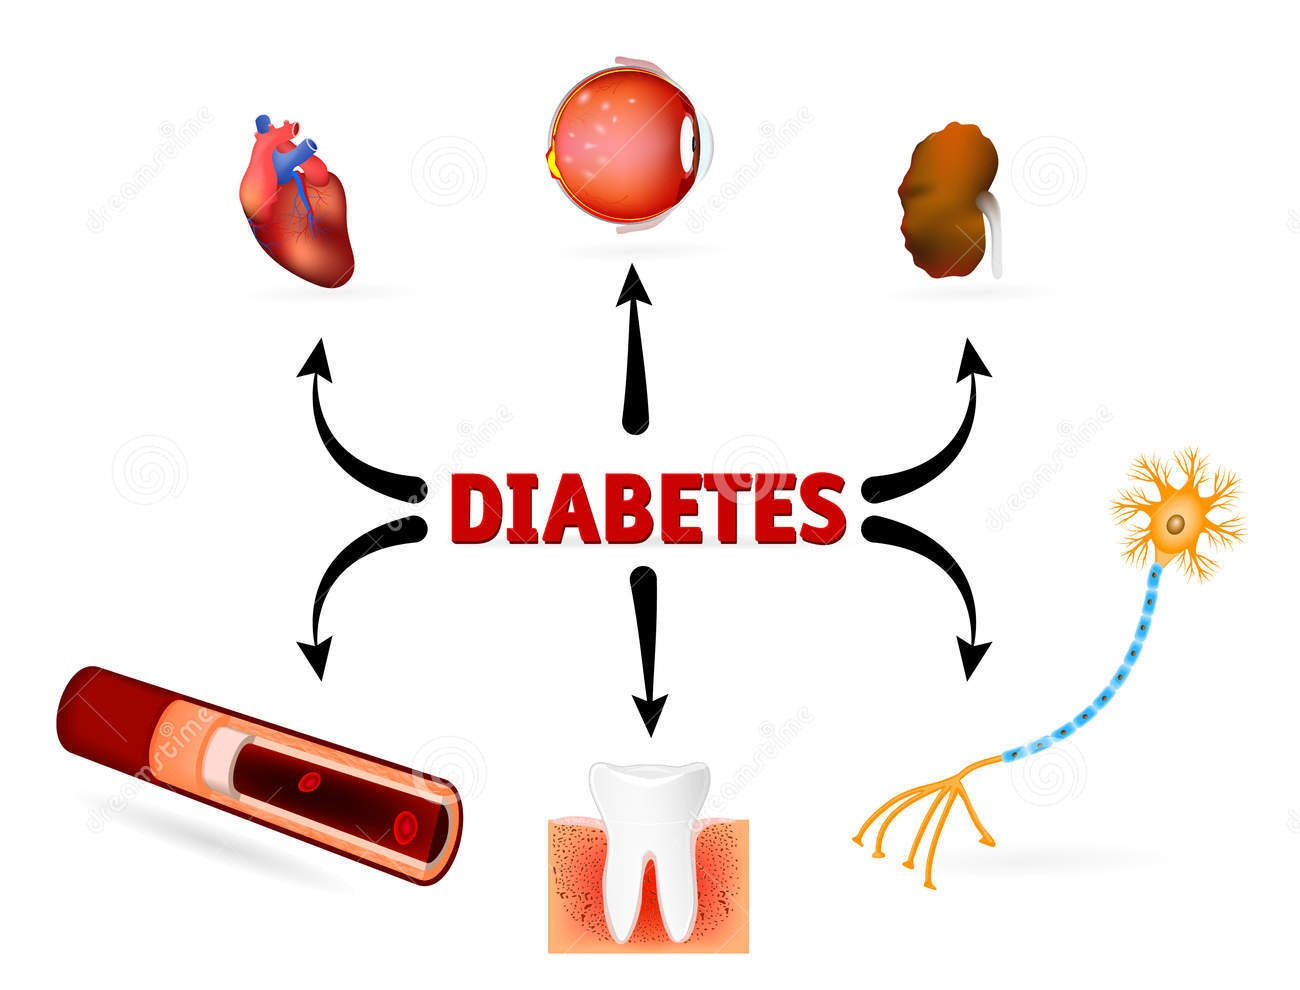 complications-diabetes-mellitus-such-as-blindness-heart-disease-kidney-failure-high-blood-pressure-46253965